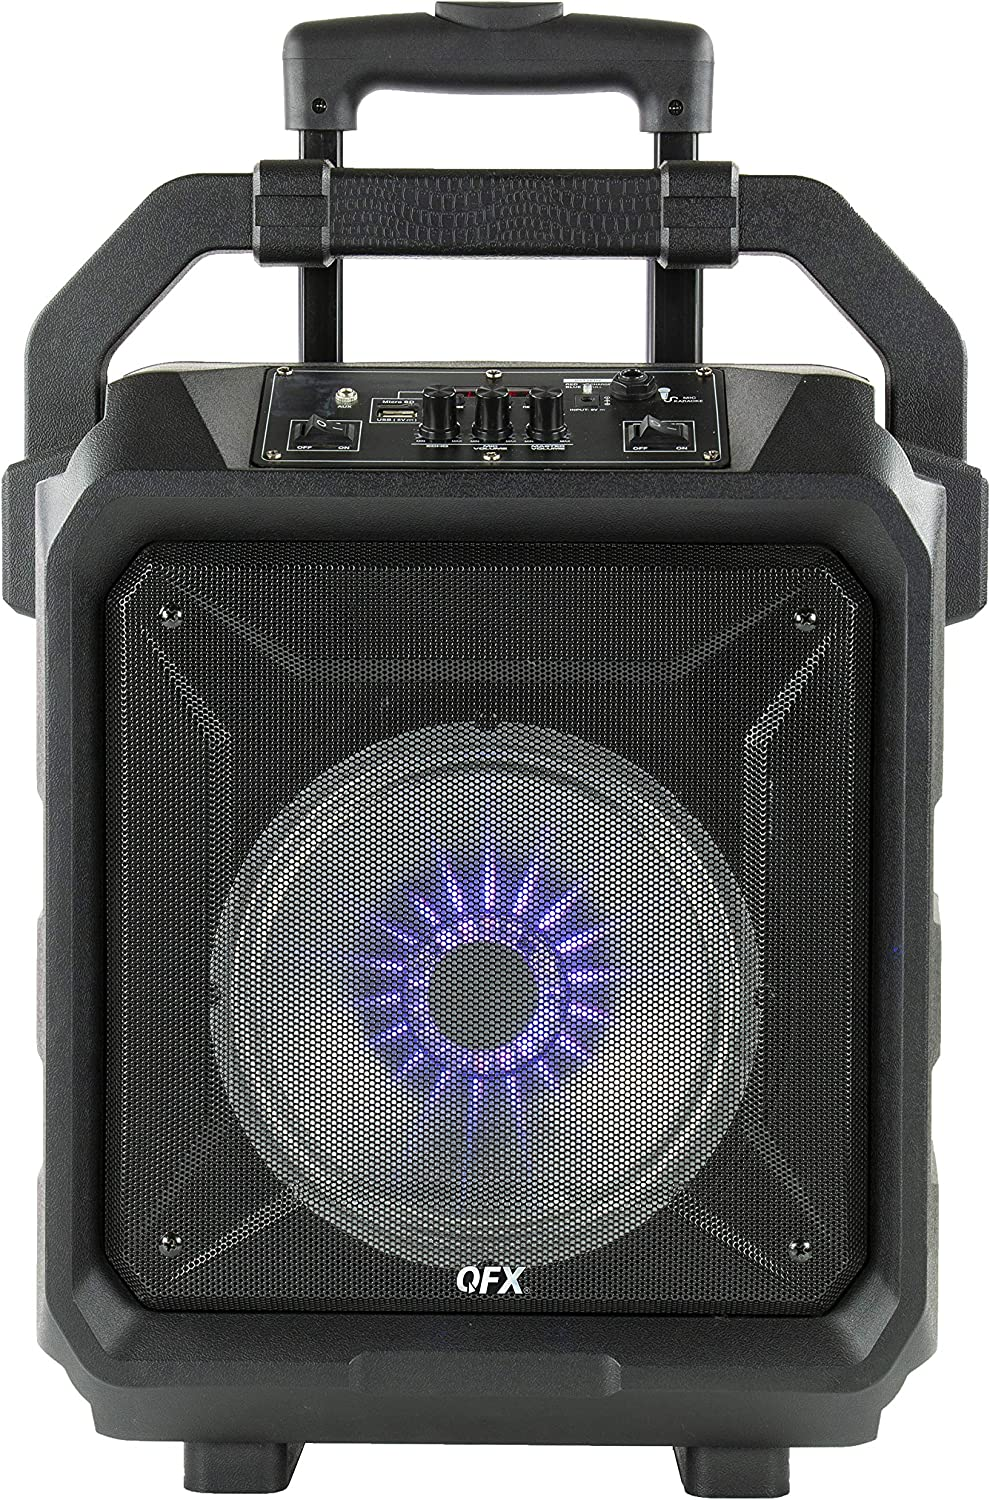 "QFX PBX-70 8"" Rugged Bluetooth Portable Party Sound System"